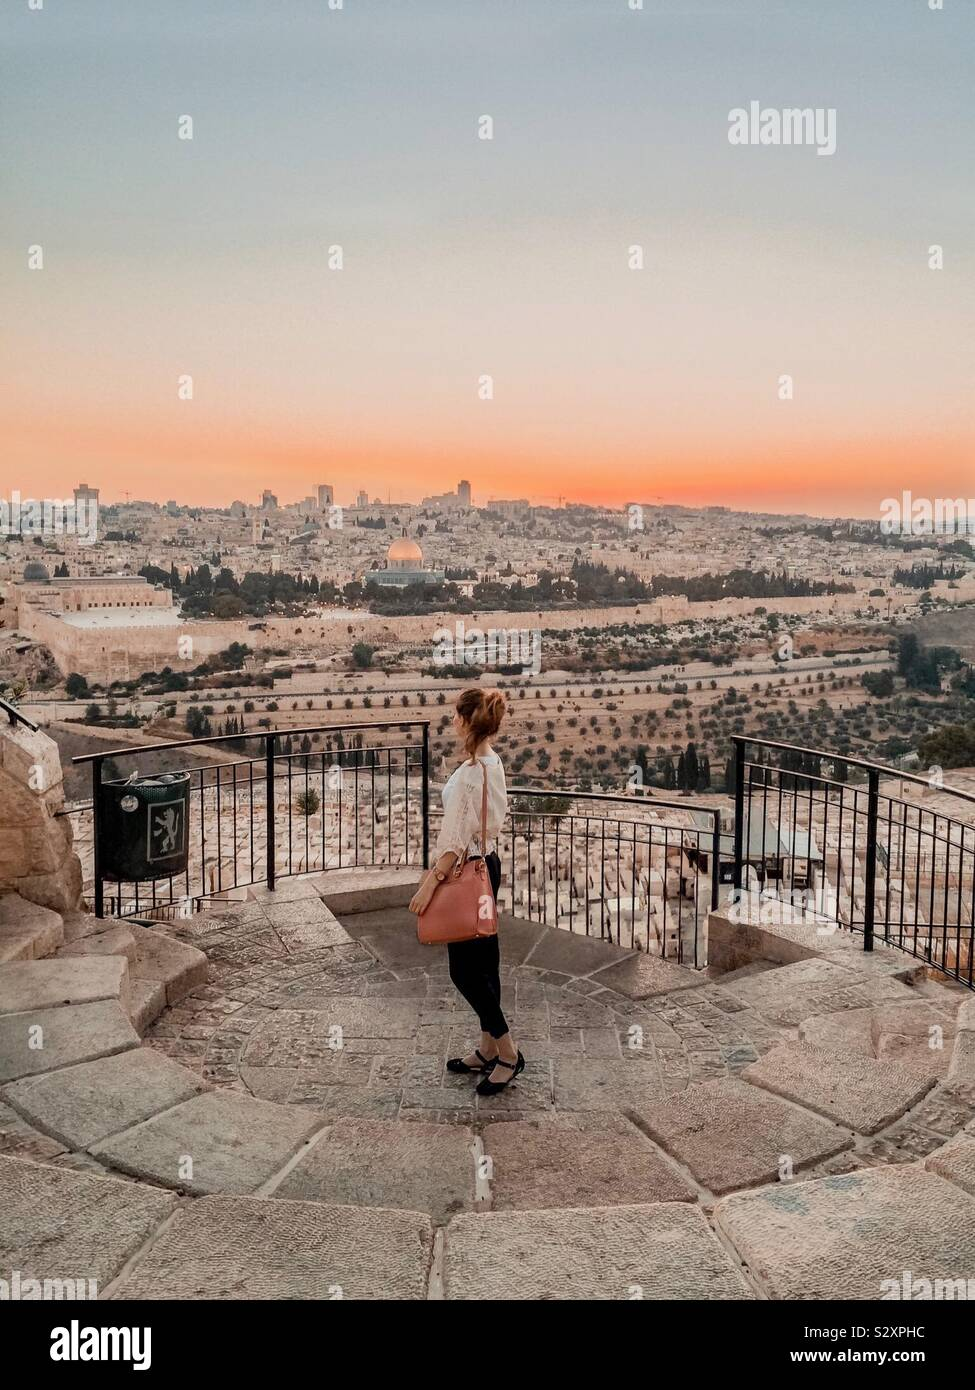 Young woman overlooking the city of Jerusalem, Israel, Middle East Stock Photo